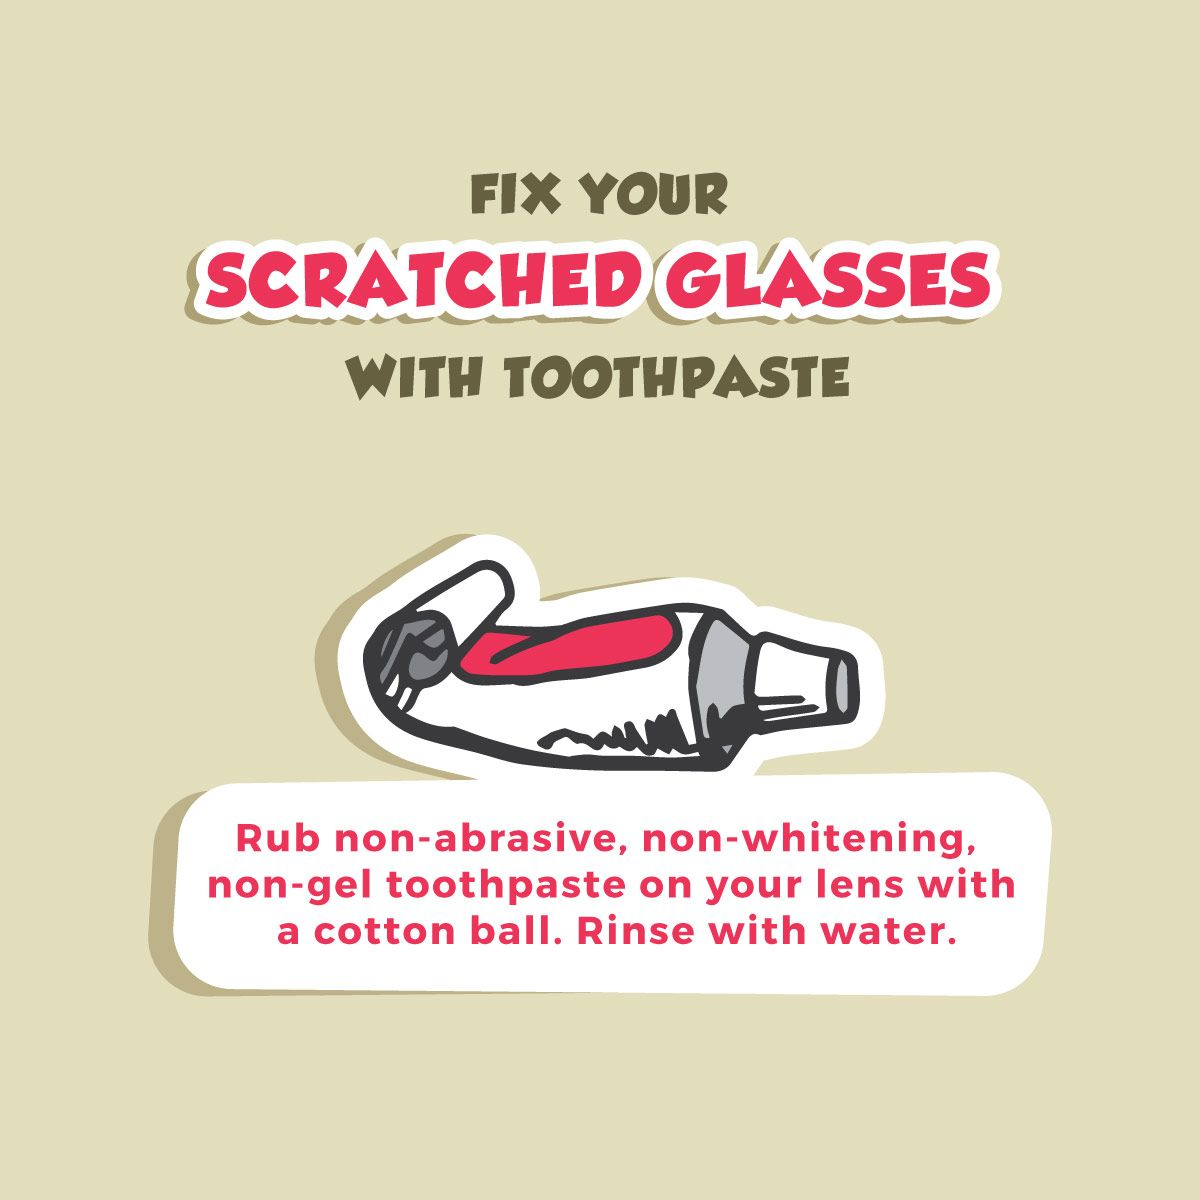 KEEP YOUR SUNGLASSES LOOKING BRAND NEW with this toothpaste trick!  Palm Valley Pediatric Dentistry Advisory Board!